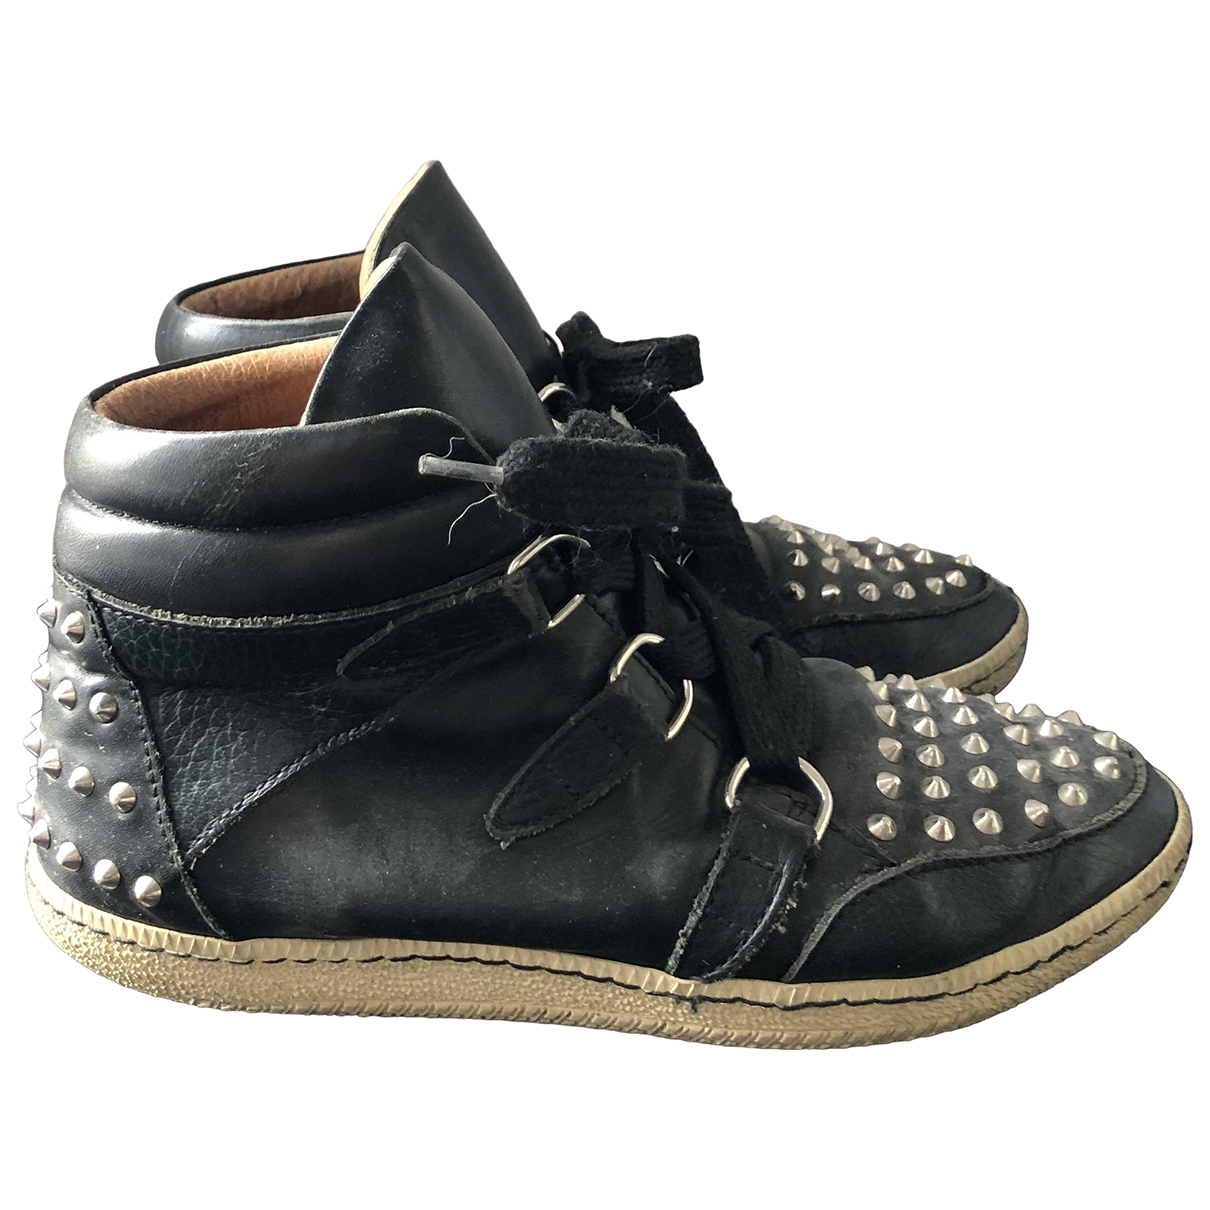 Sandro \N Black Leather Trainers for Women 38 EU